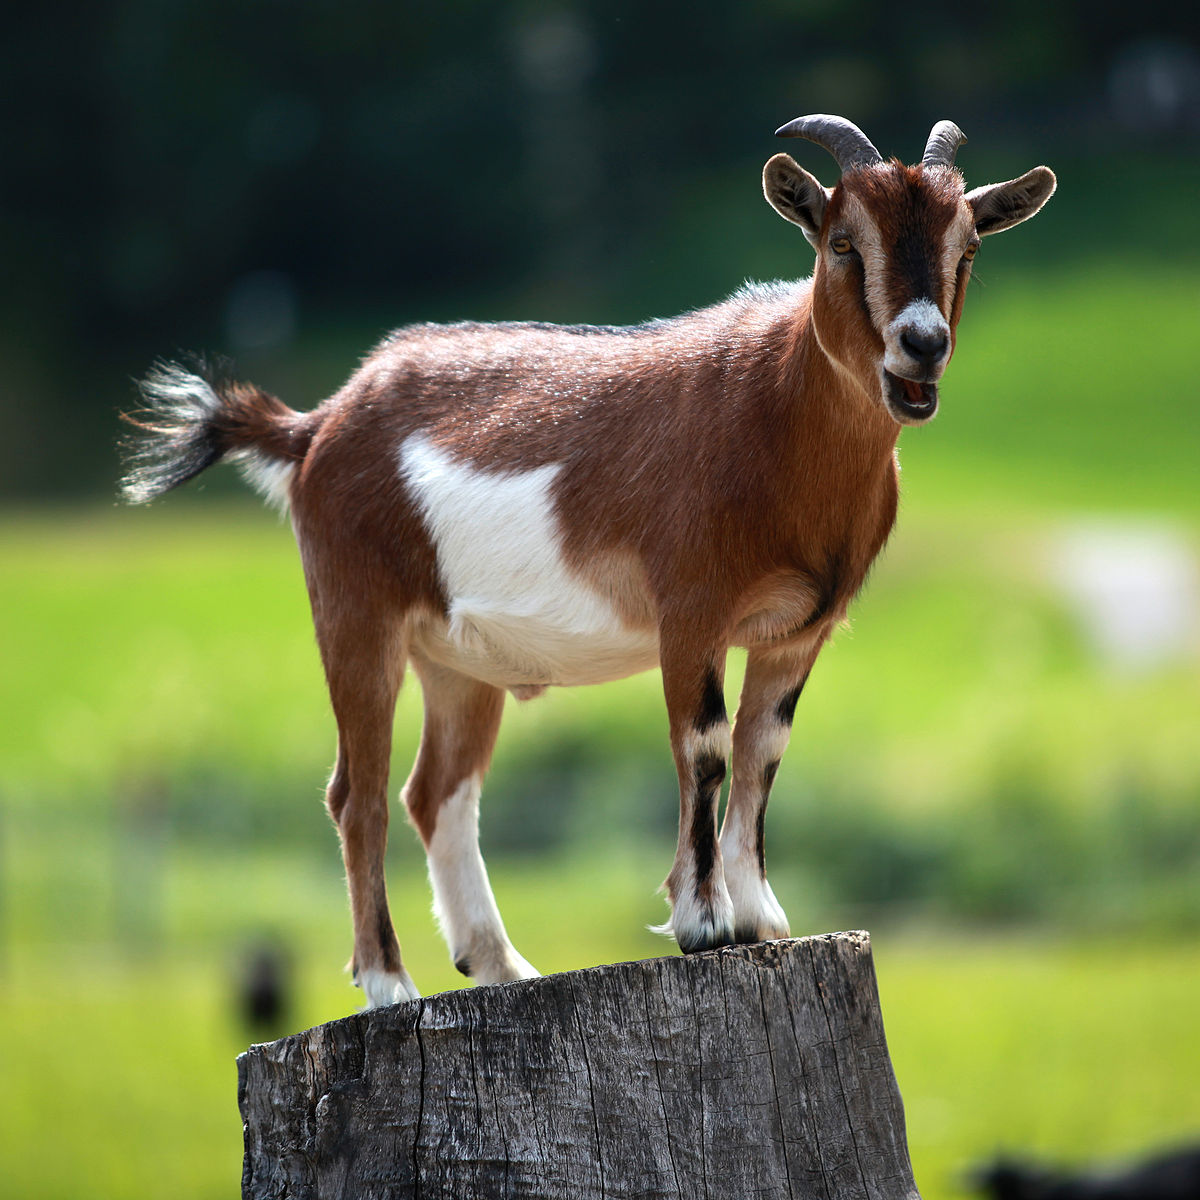 Light-loving animals, Goats go foraging during the day